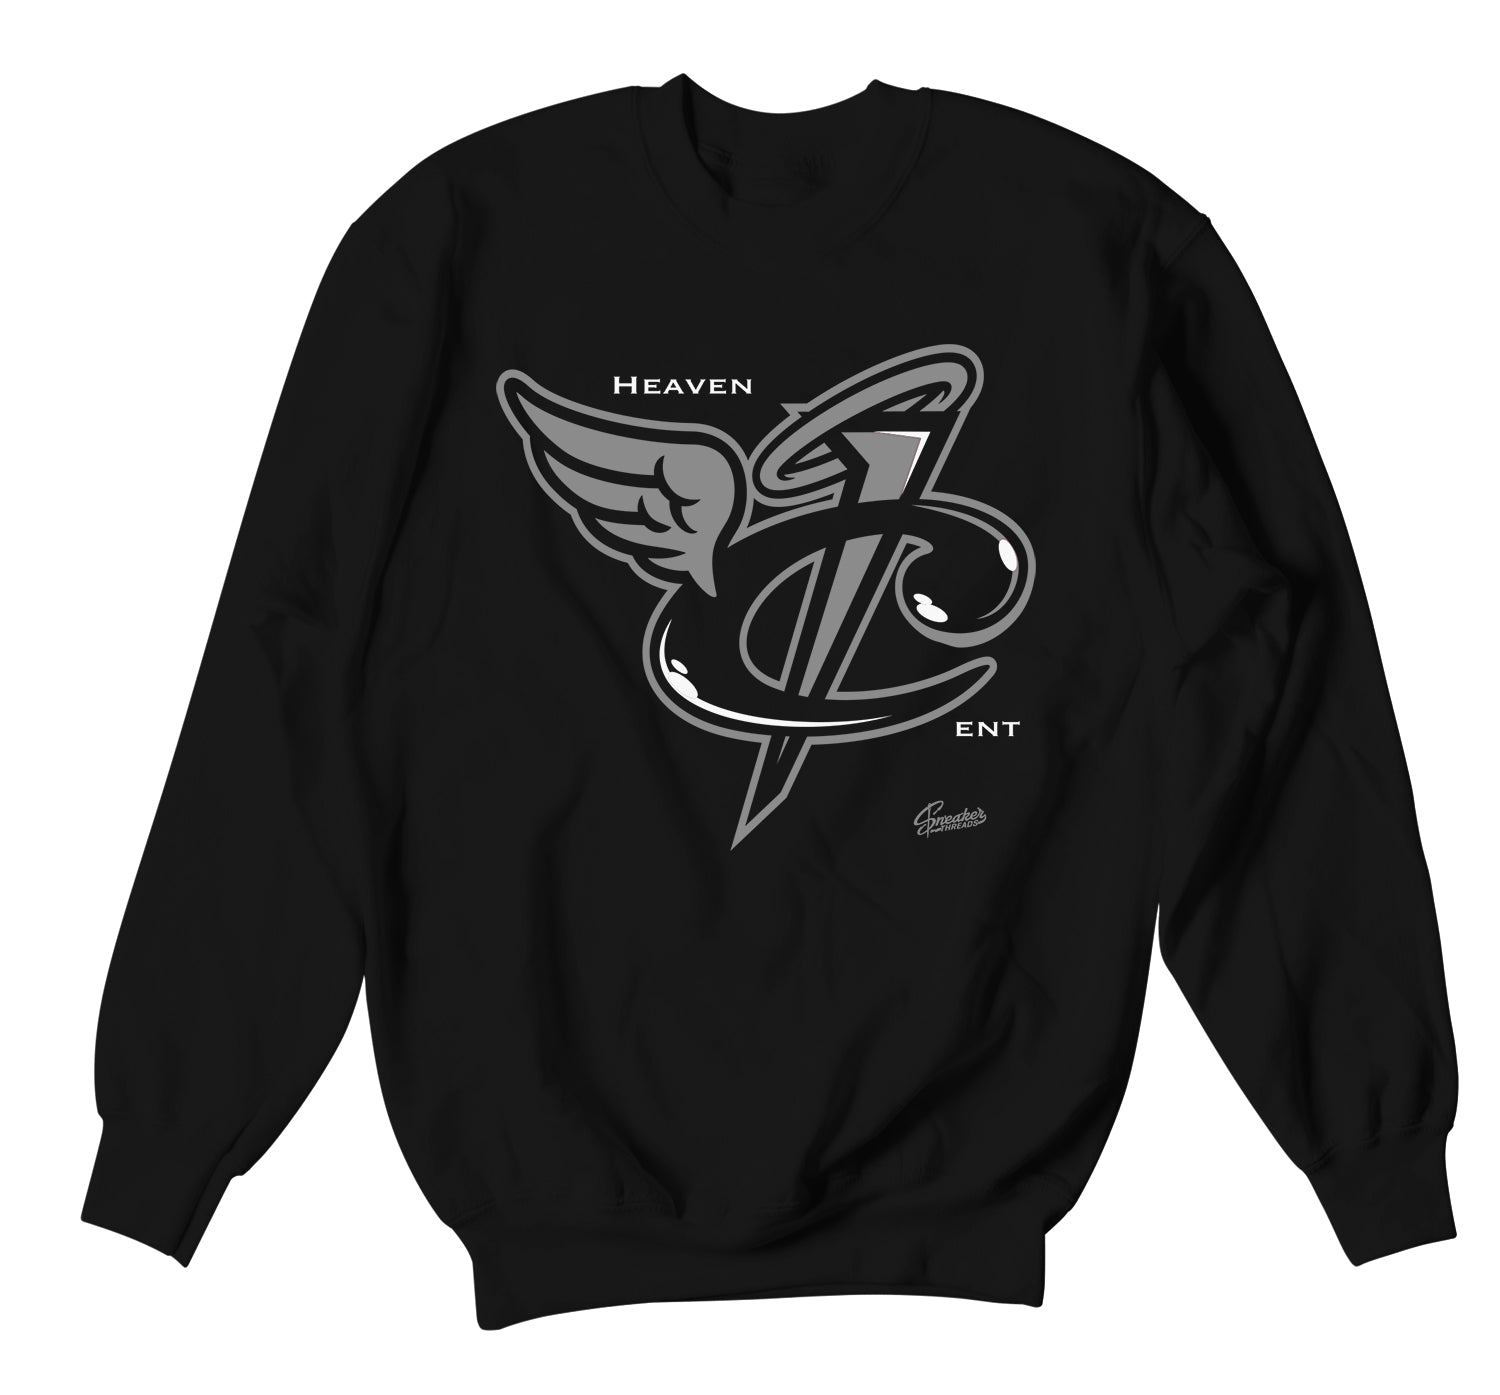 Foamposite All Over Heaven Cent Sweater